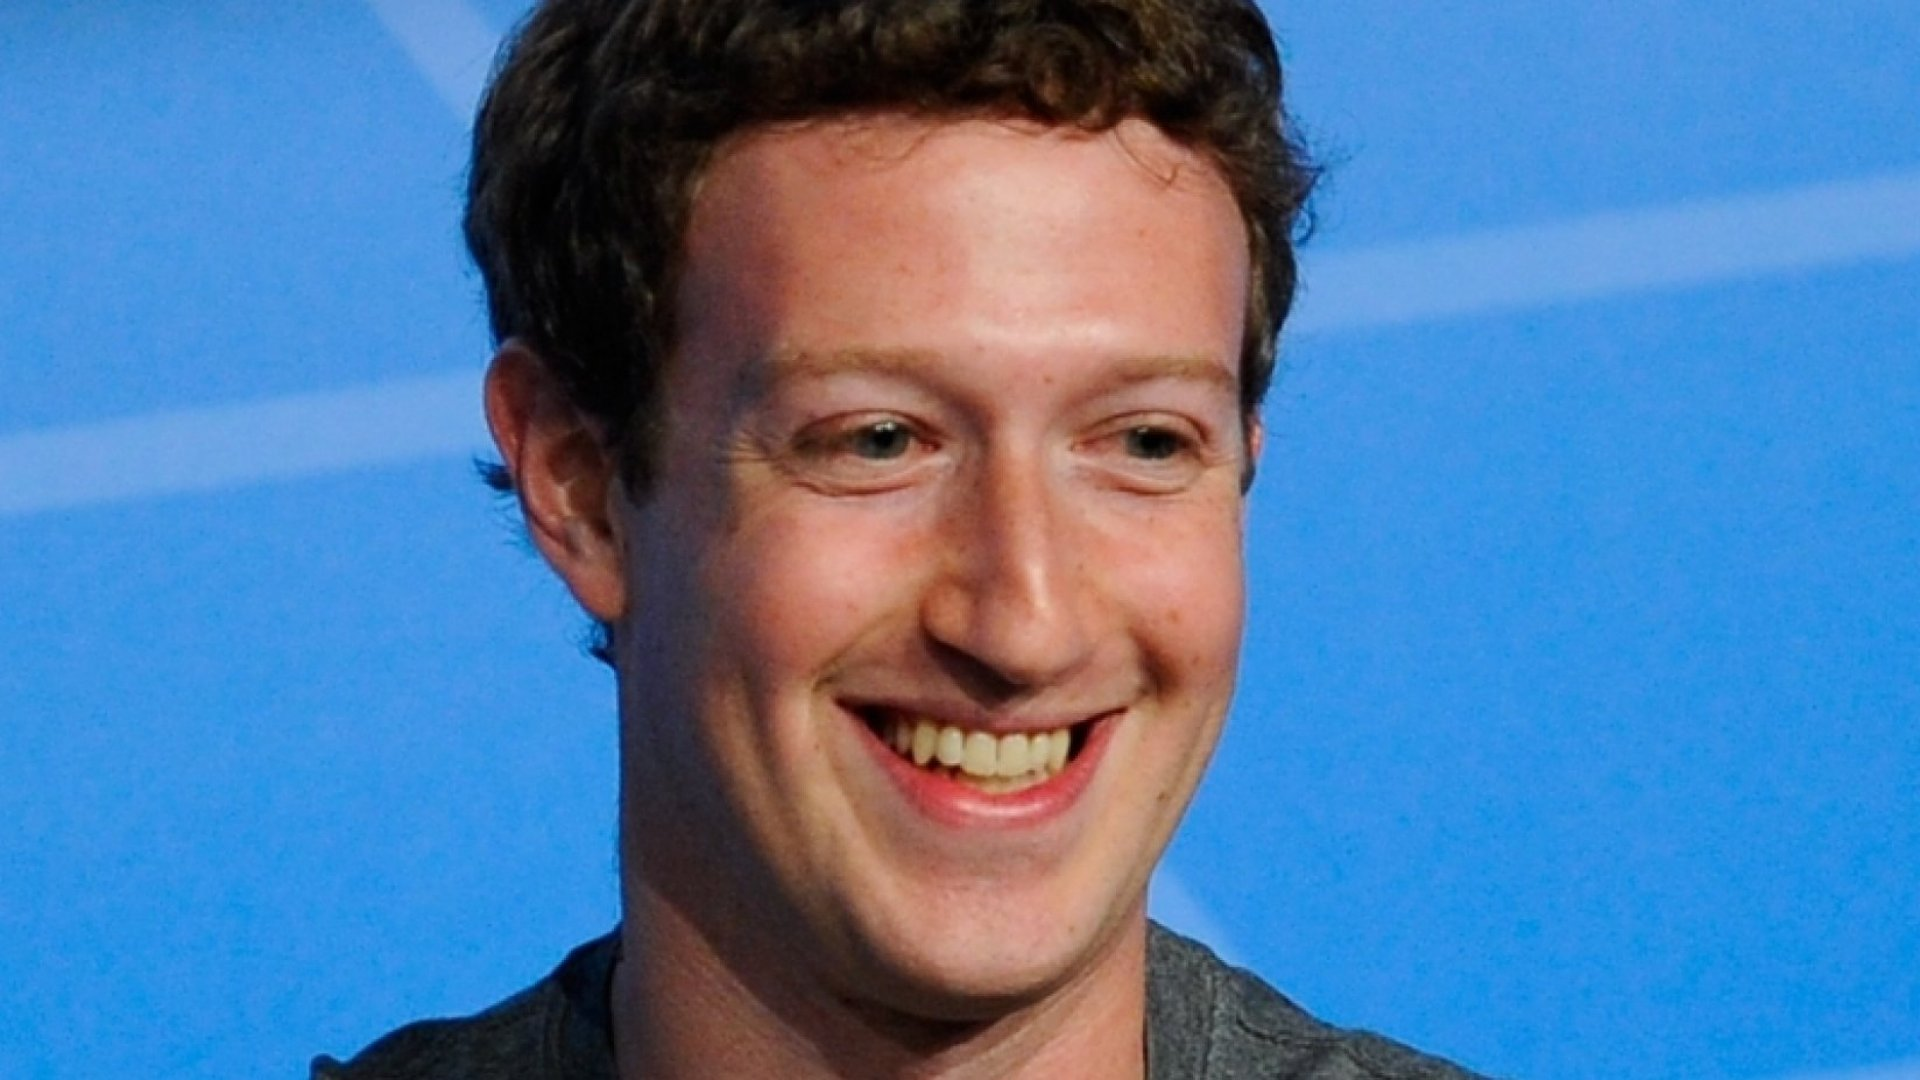 Facebook Launched a Diversity Initiative and It's Just Not Good Enough